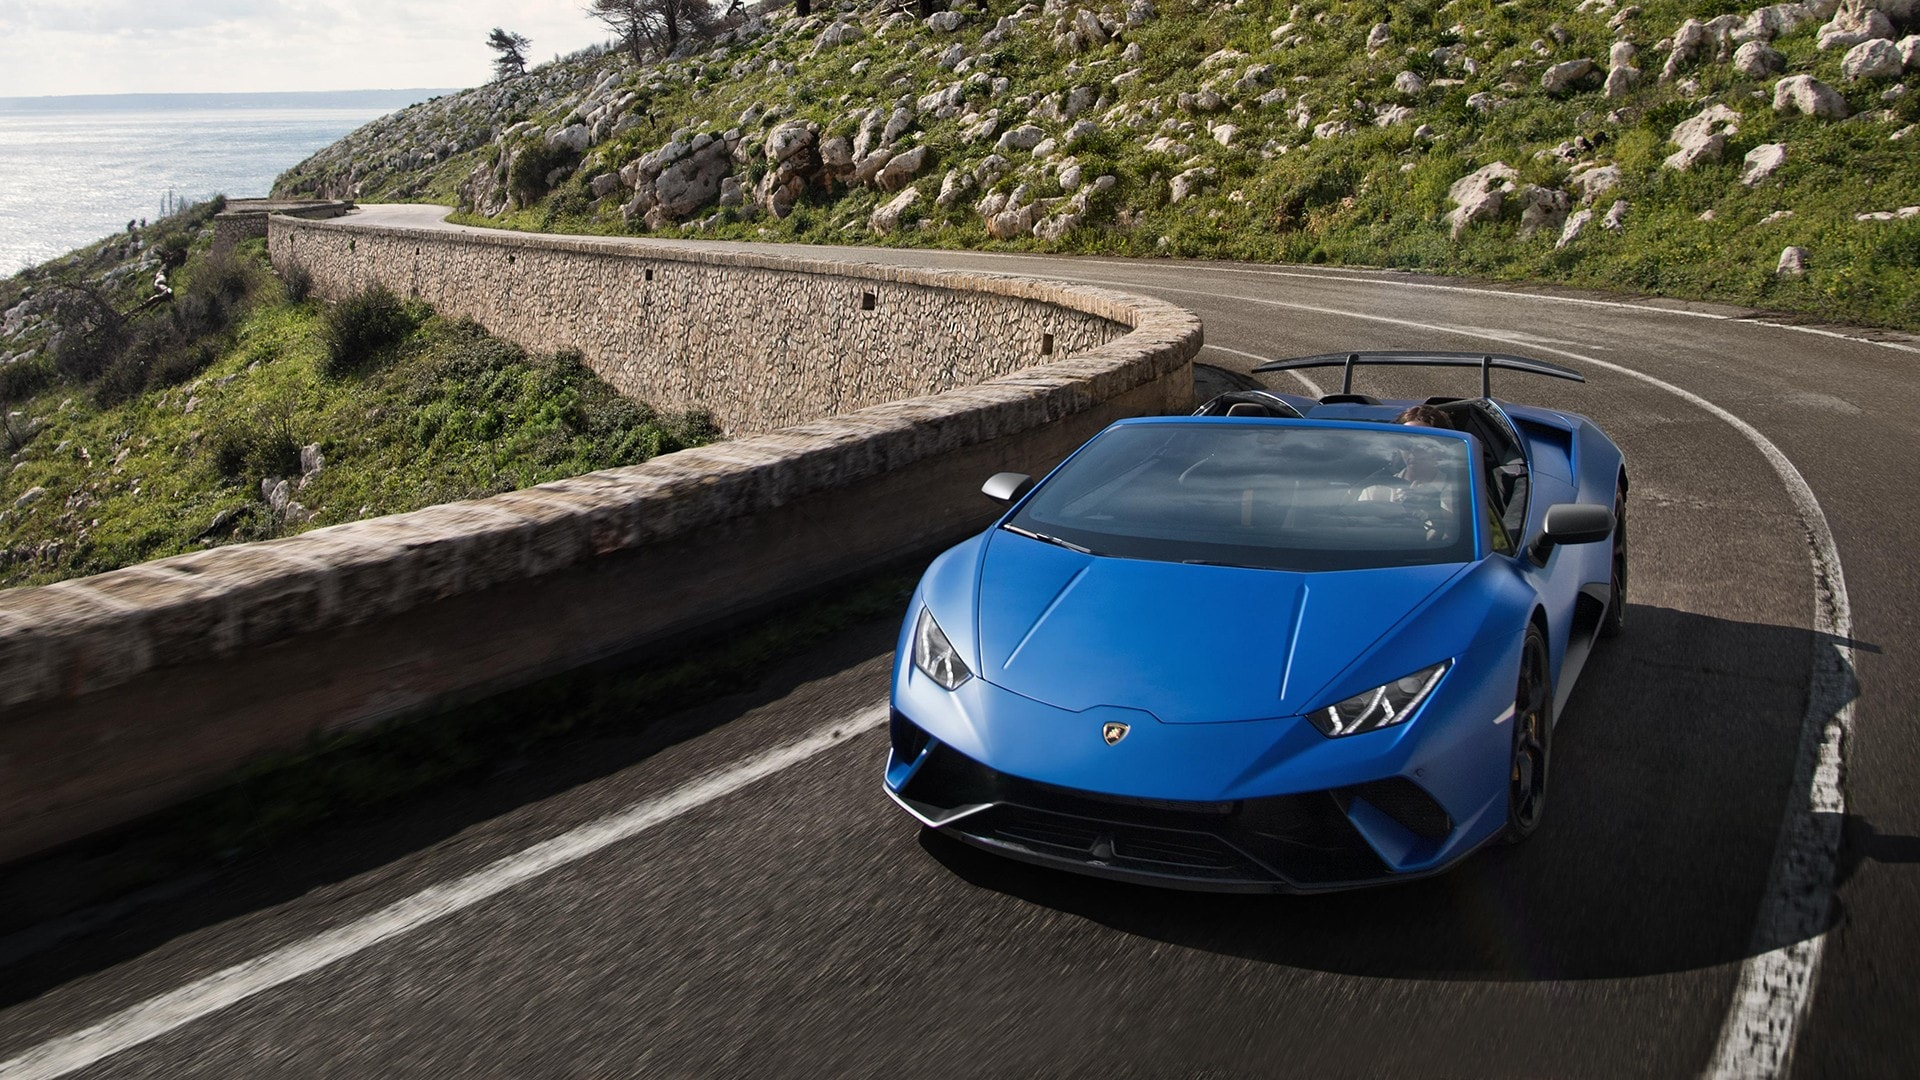 Lamborghini Huracan Performante Spyder Technical Specifications